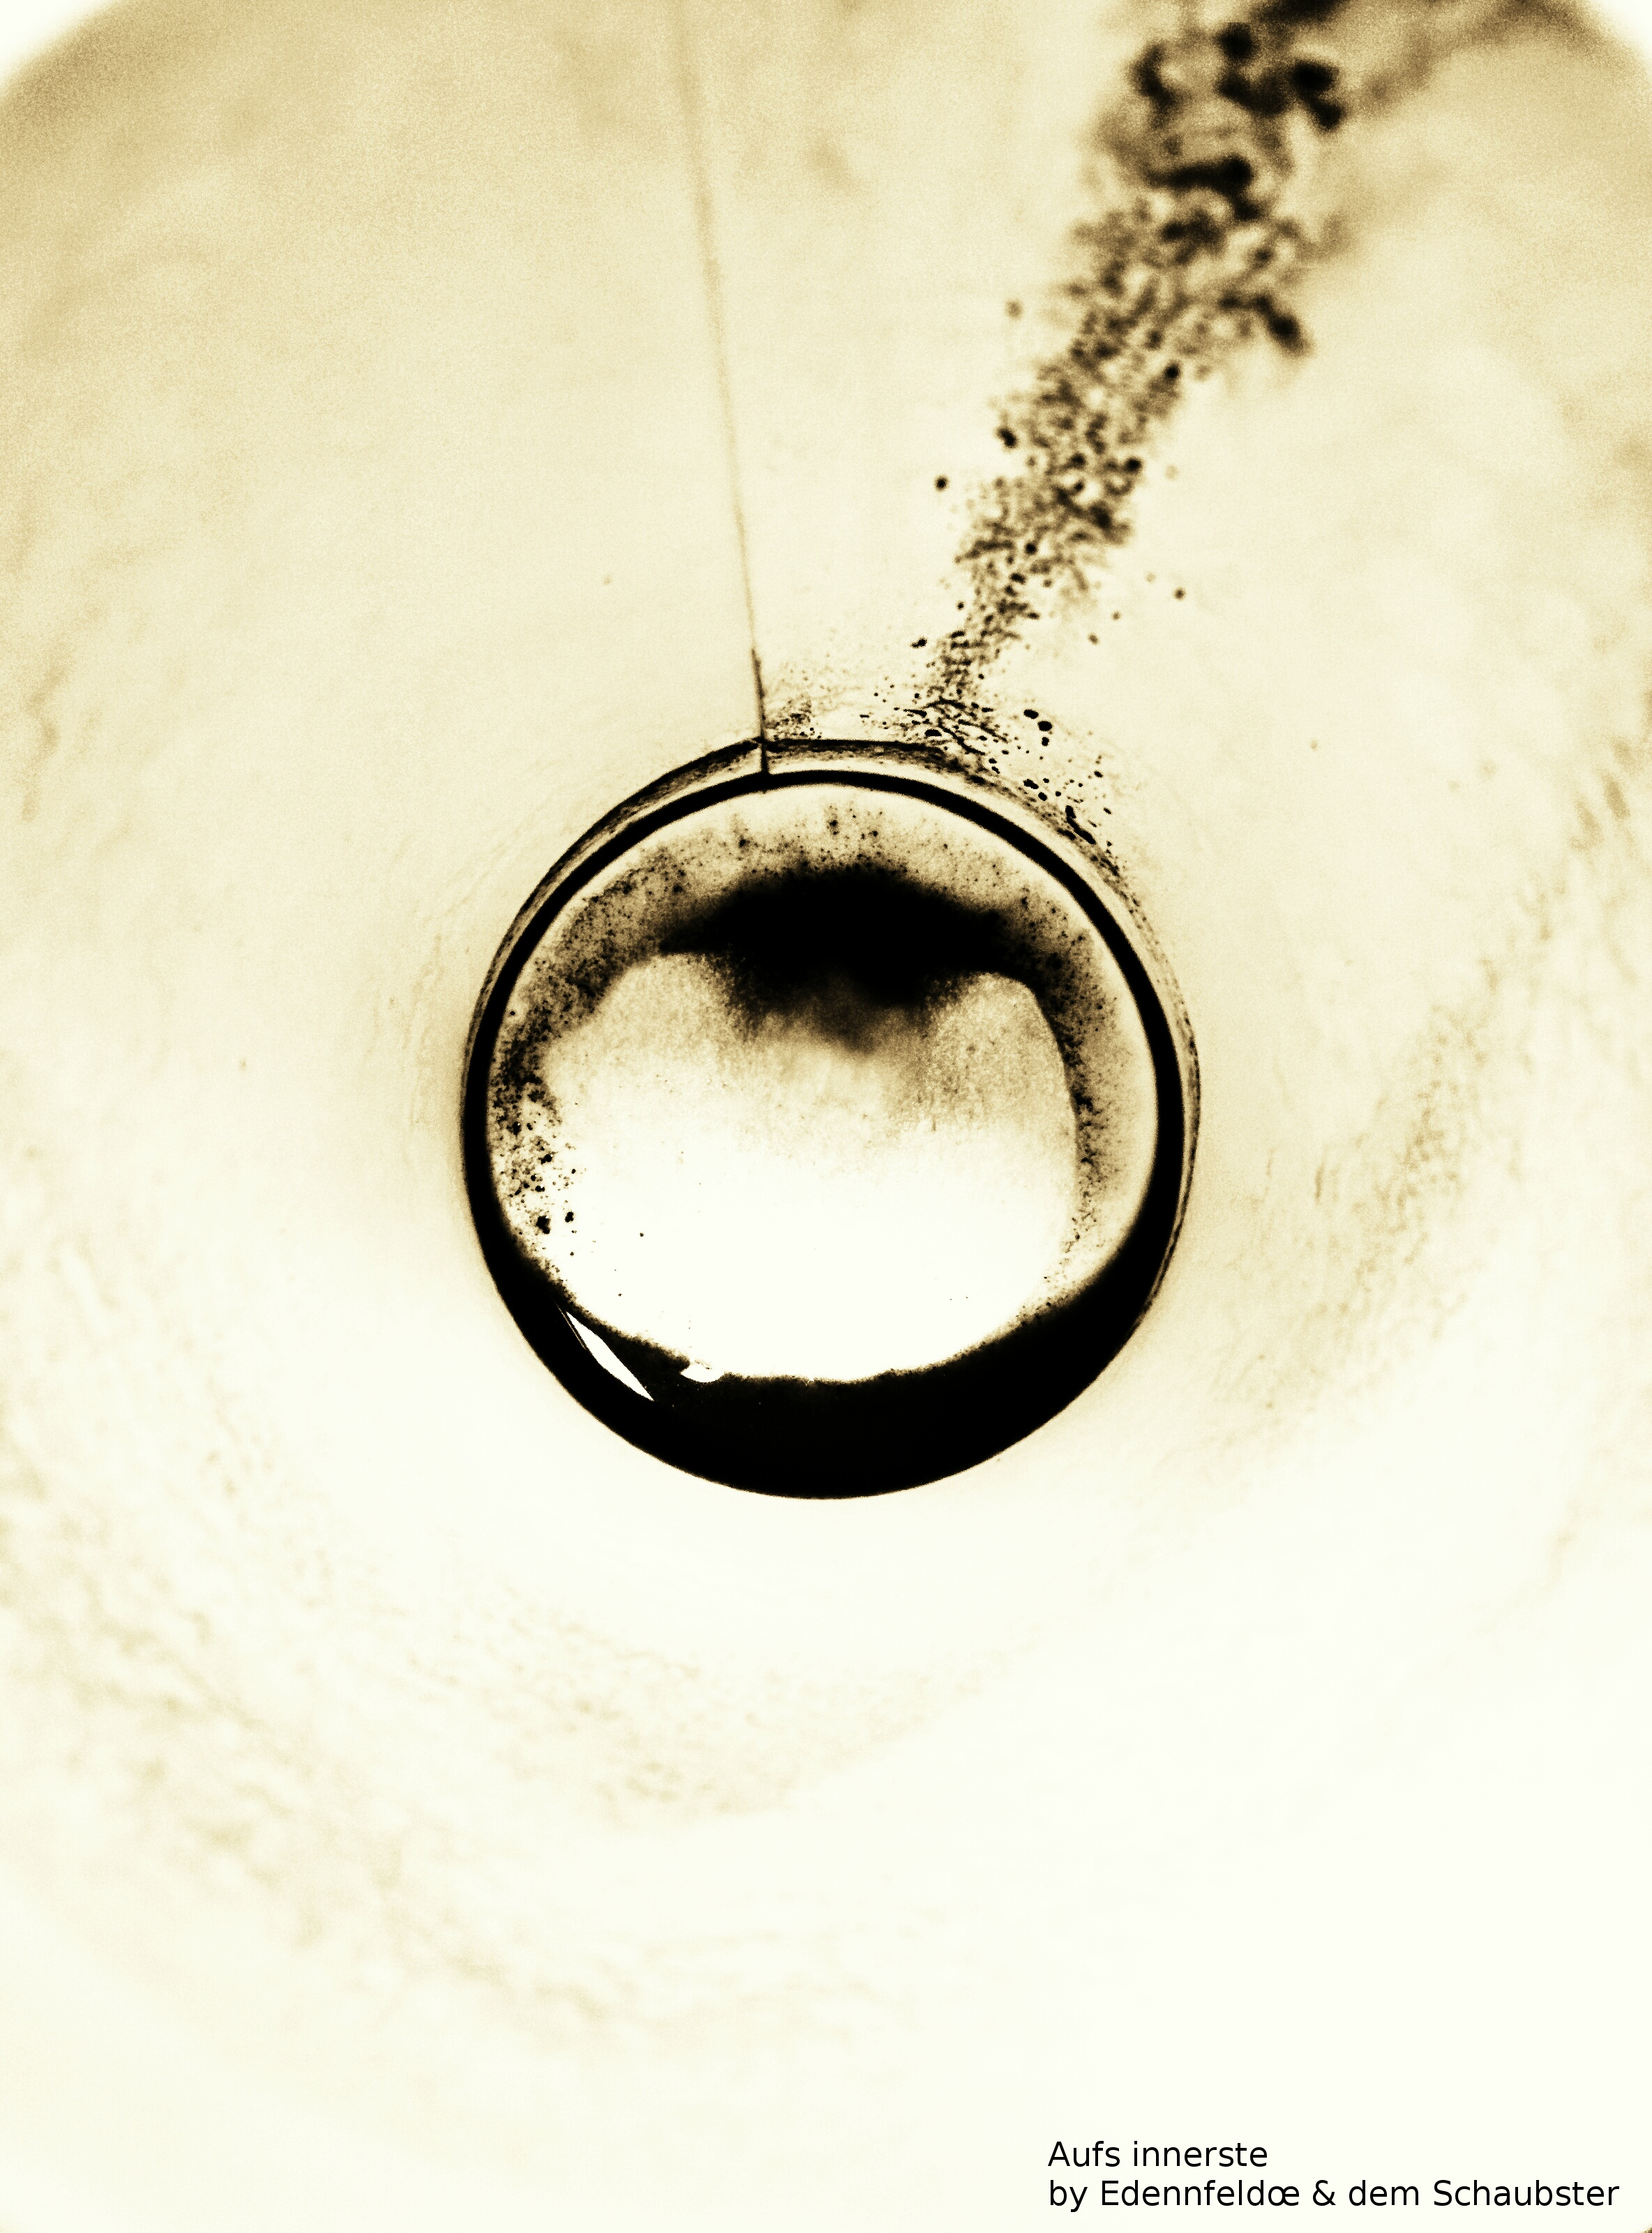 Artistic top down view into a paper coffee cup with black coffee stains at the bottom